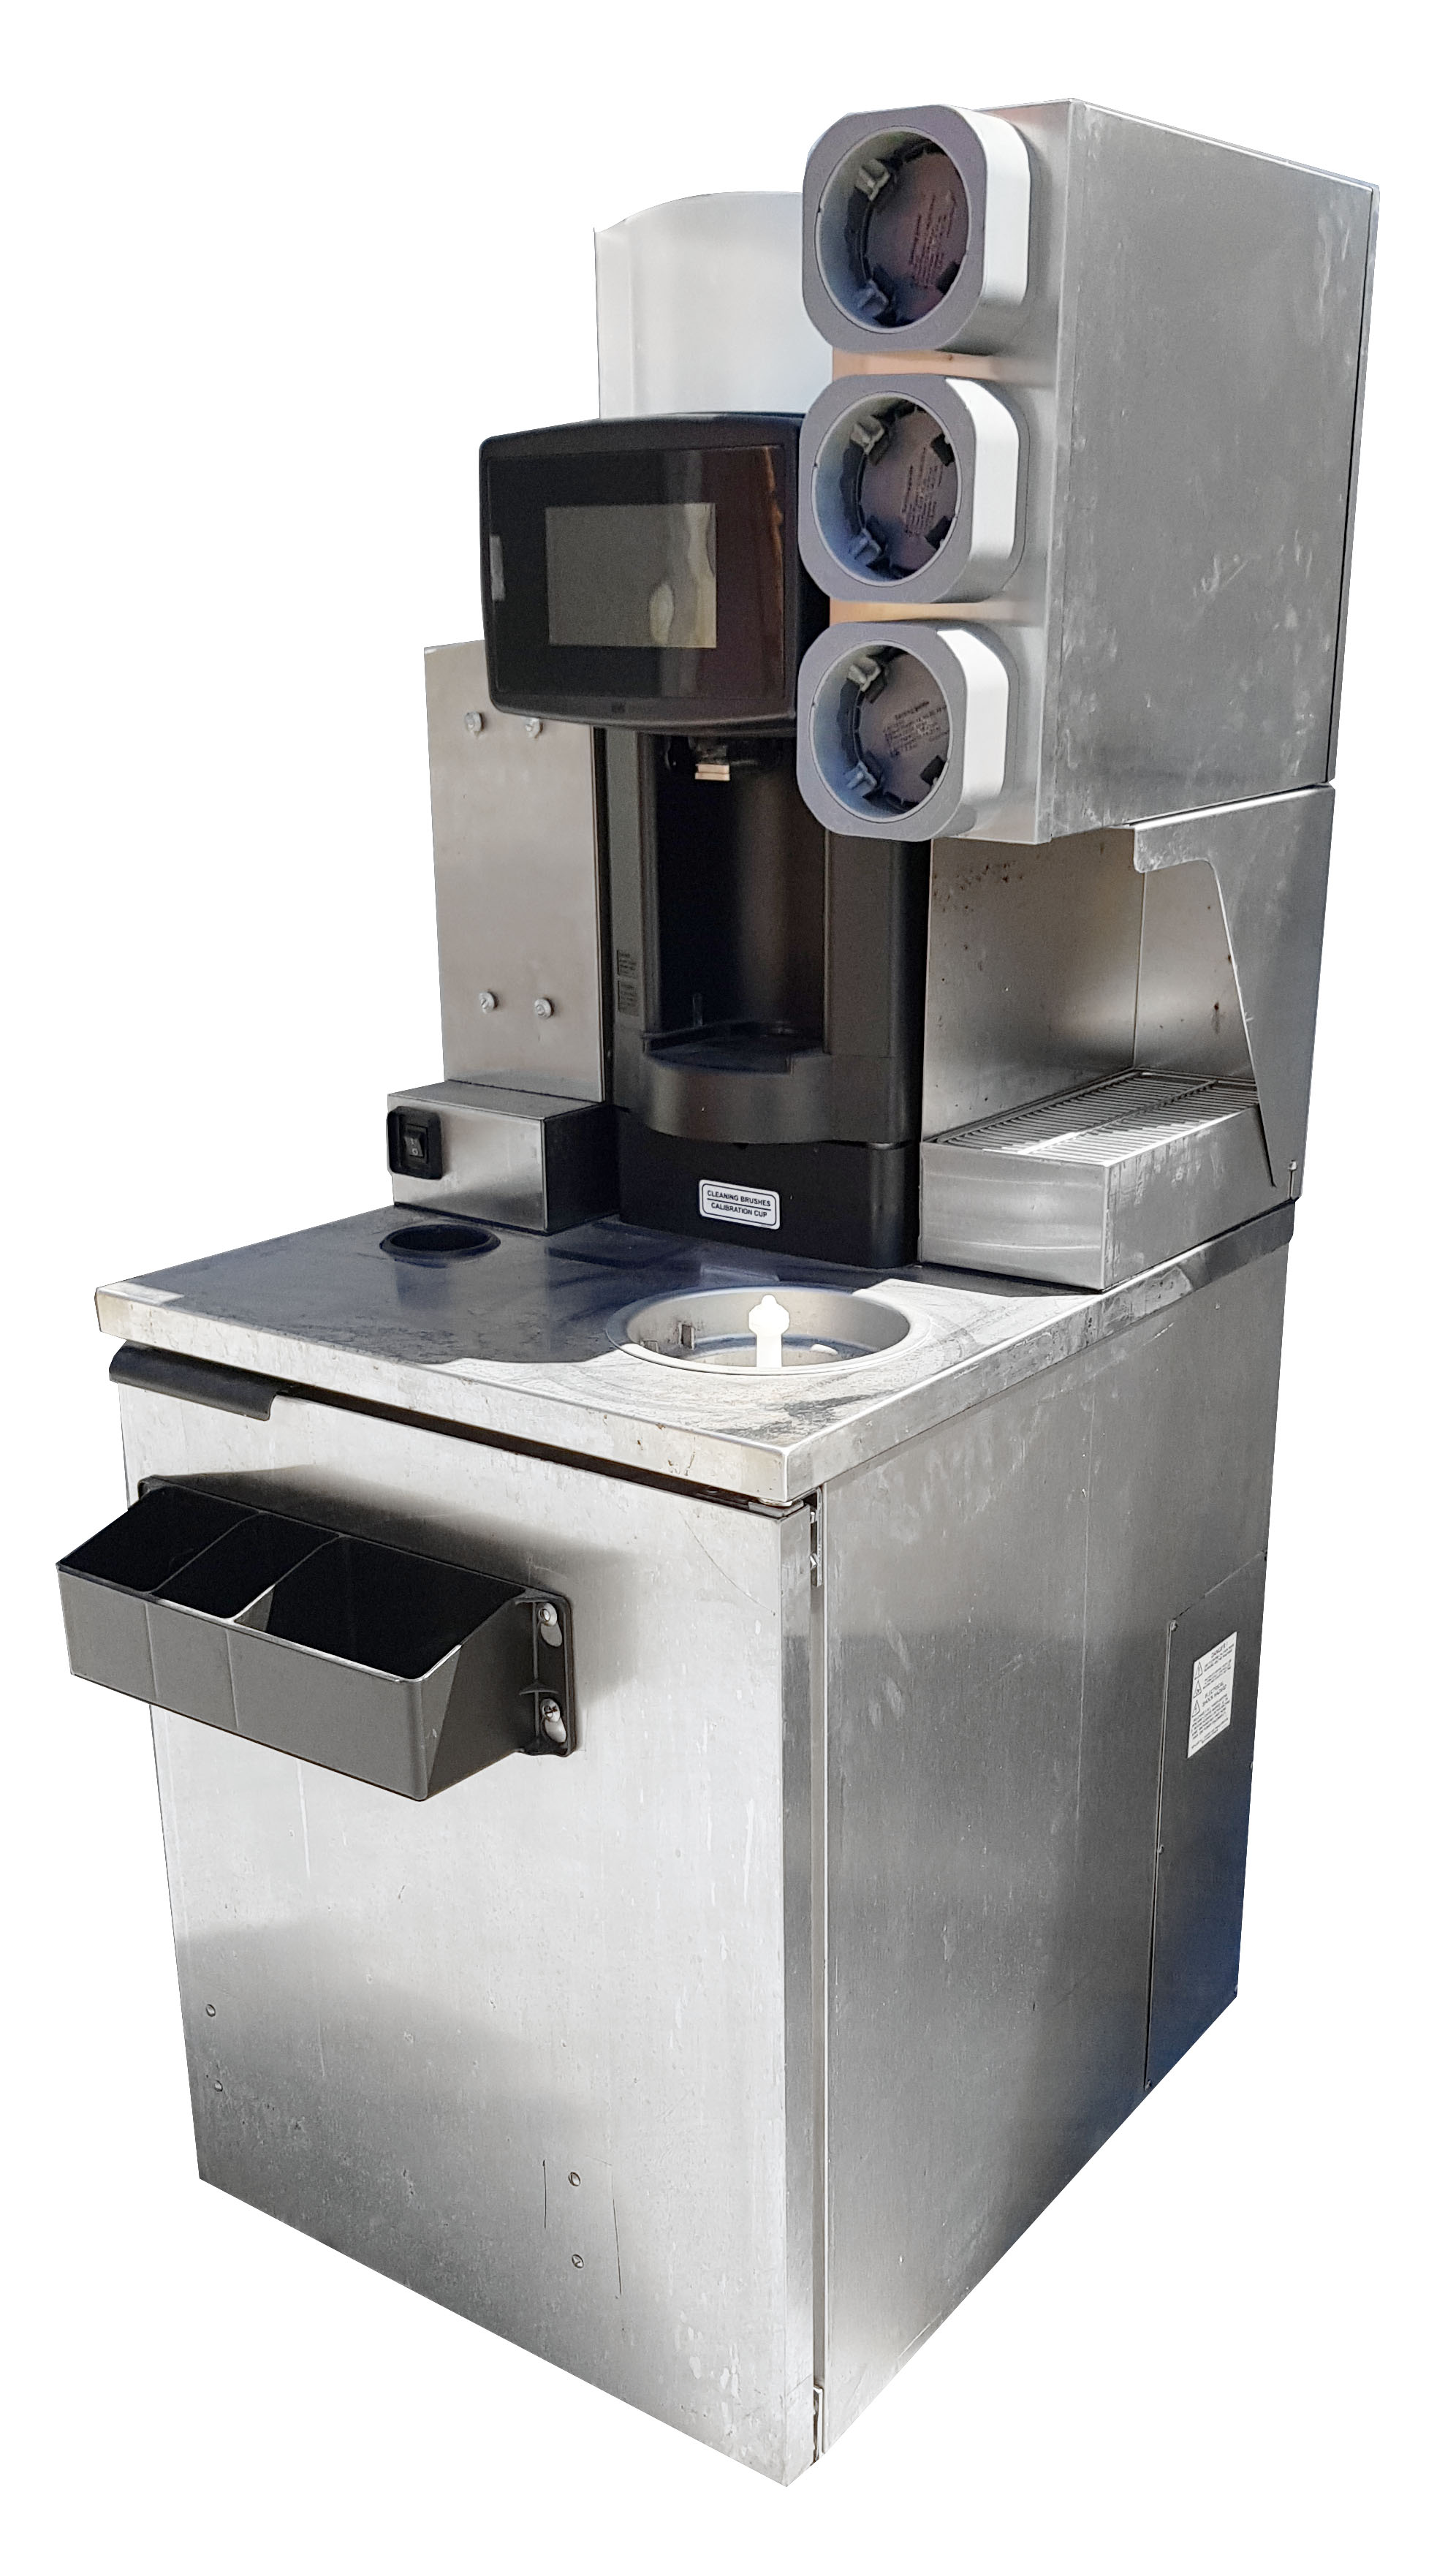 - Taylor Company Blended Ice (Smoothie) Machine